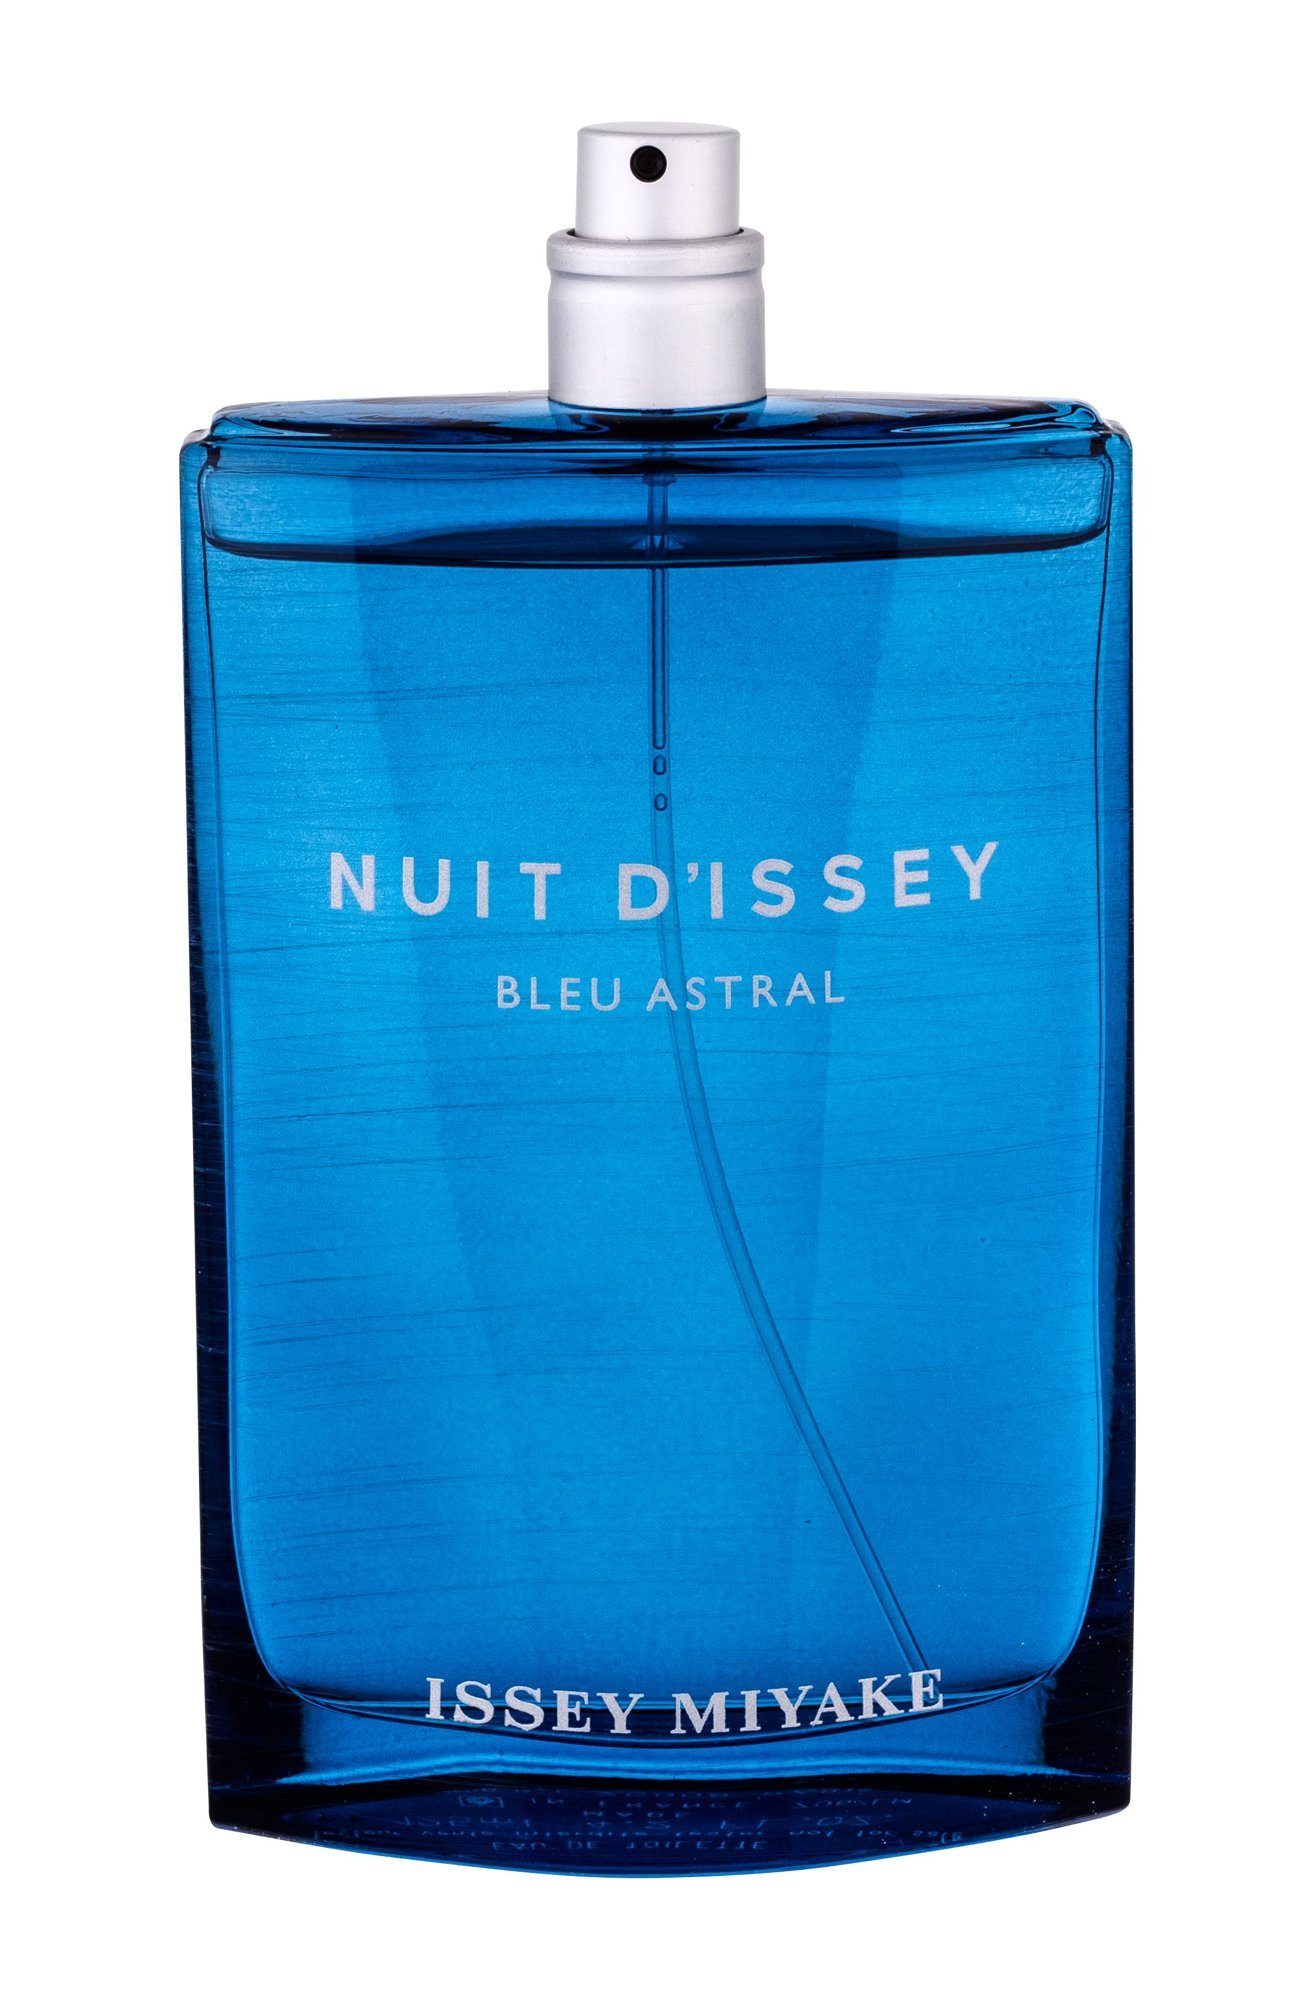 Issey Miyake Nuit d´Issey Bleu Astral